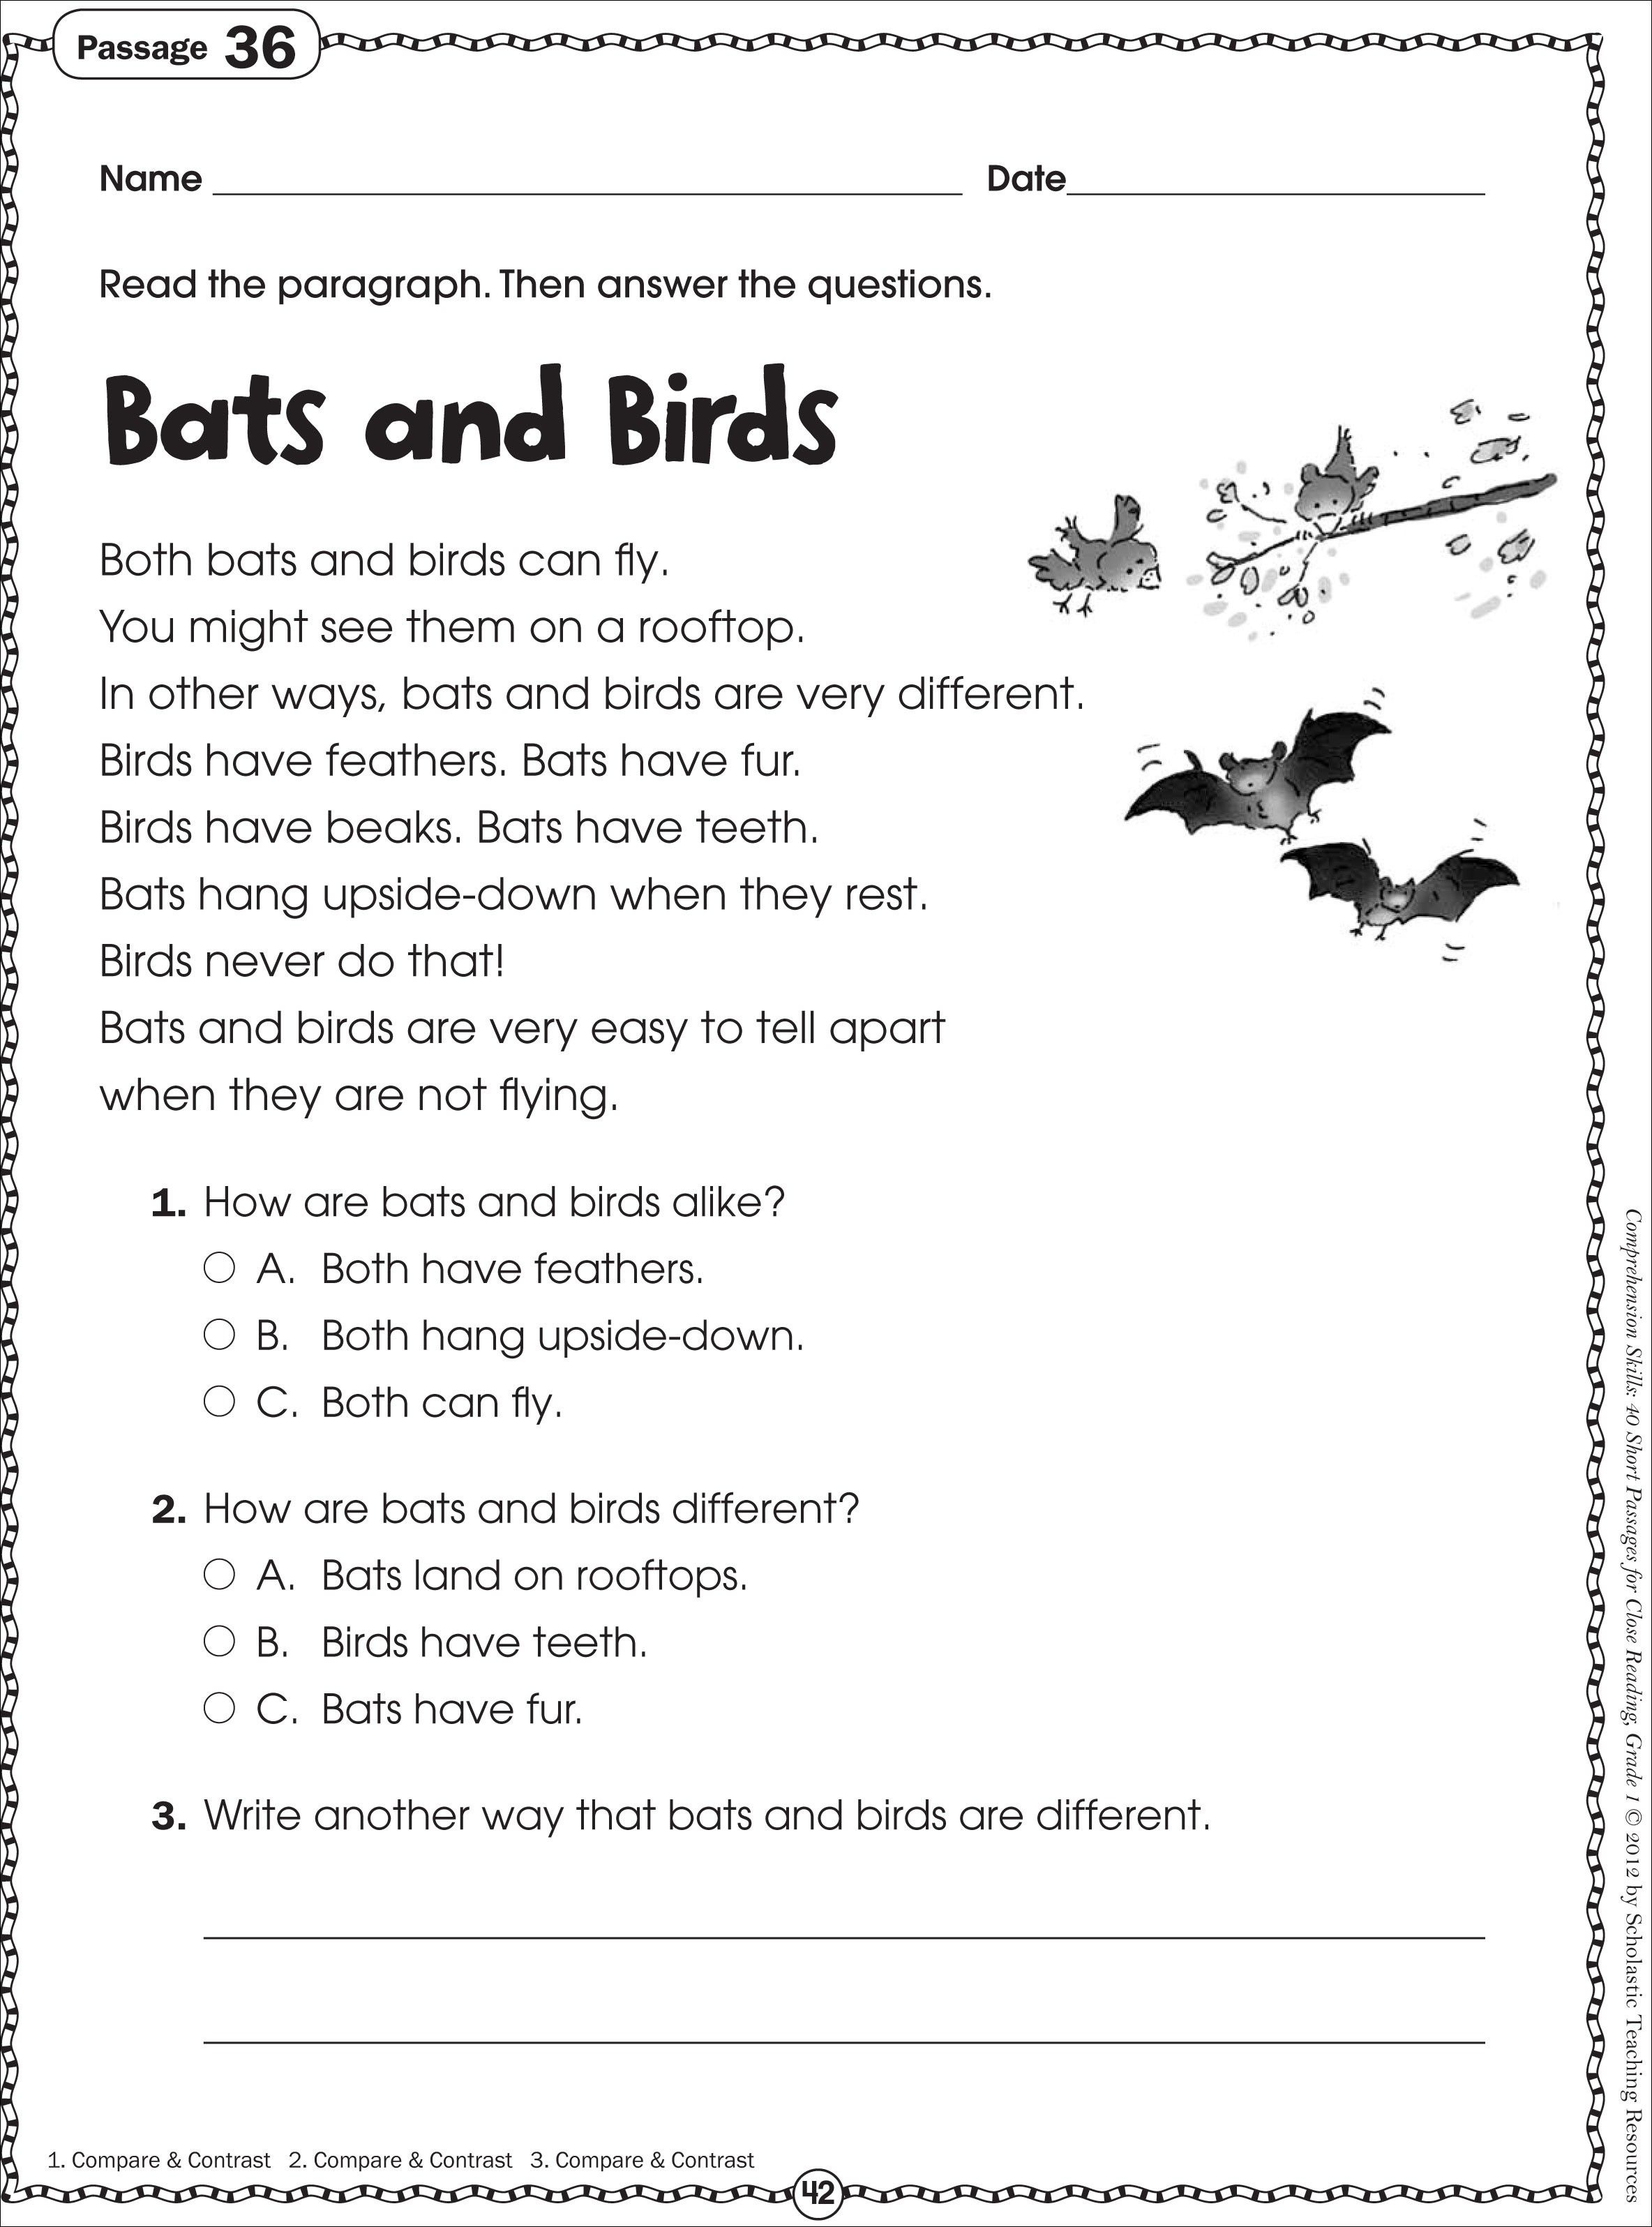 Free Printable Reading Comprehension Worksheets For Kindergarten - Free Printable Comprehension Worksheets For Grade 5